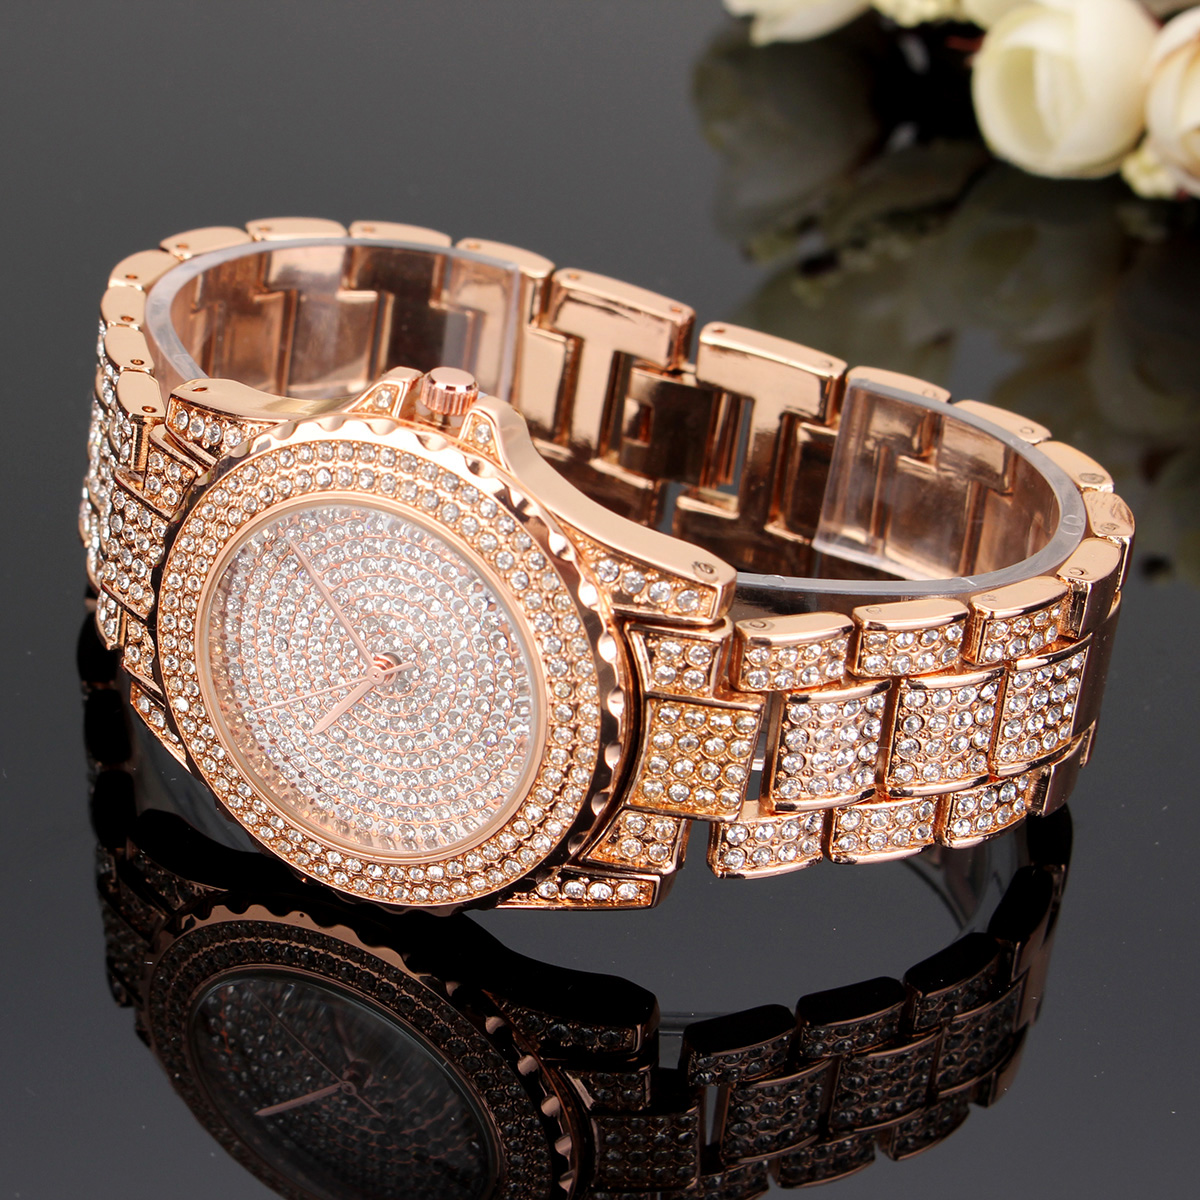 Luxury Women Watches Stainless Steel Band Crystal Fashion Quartz Wrist Watch